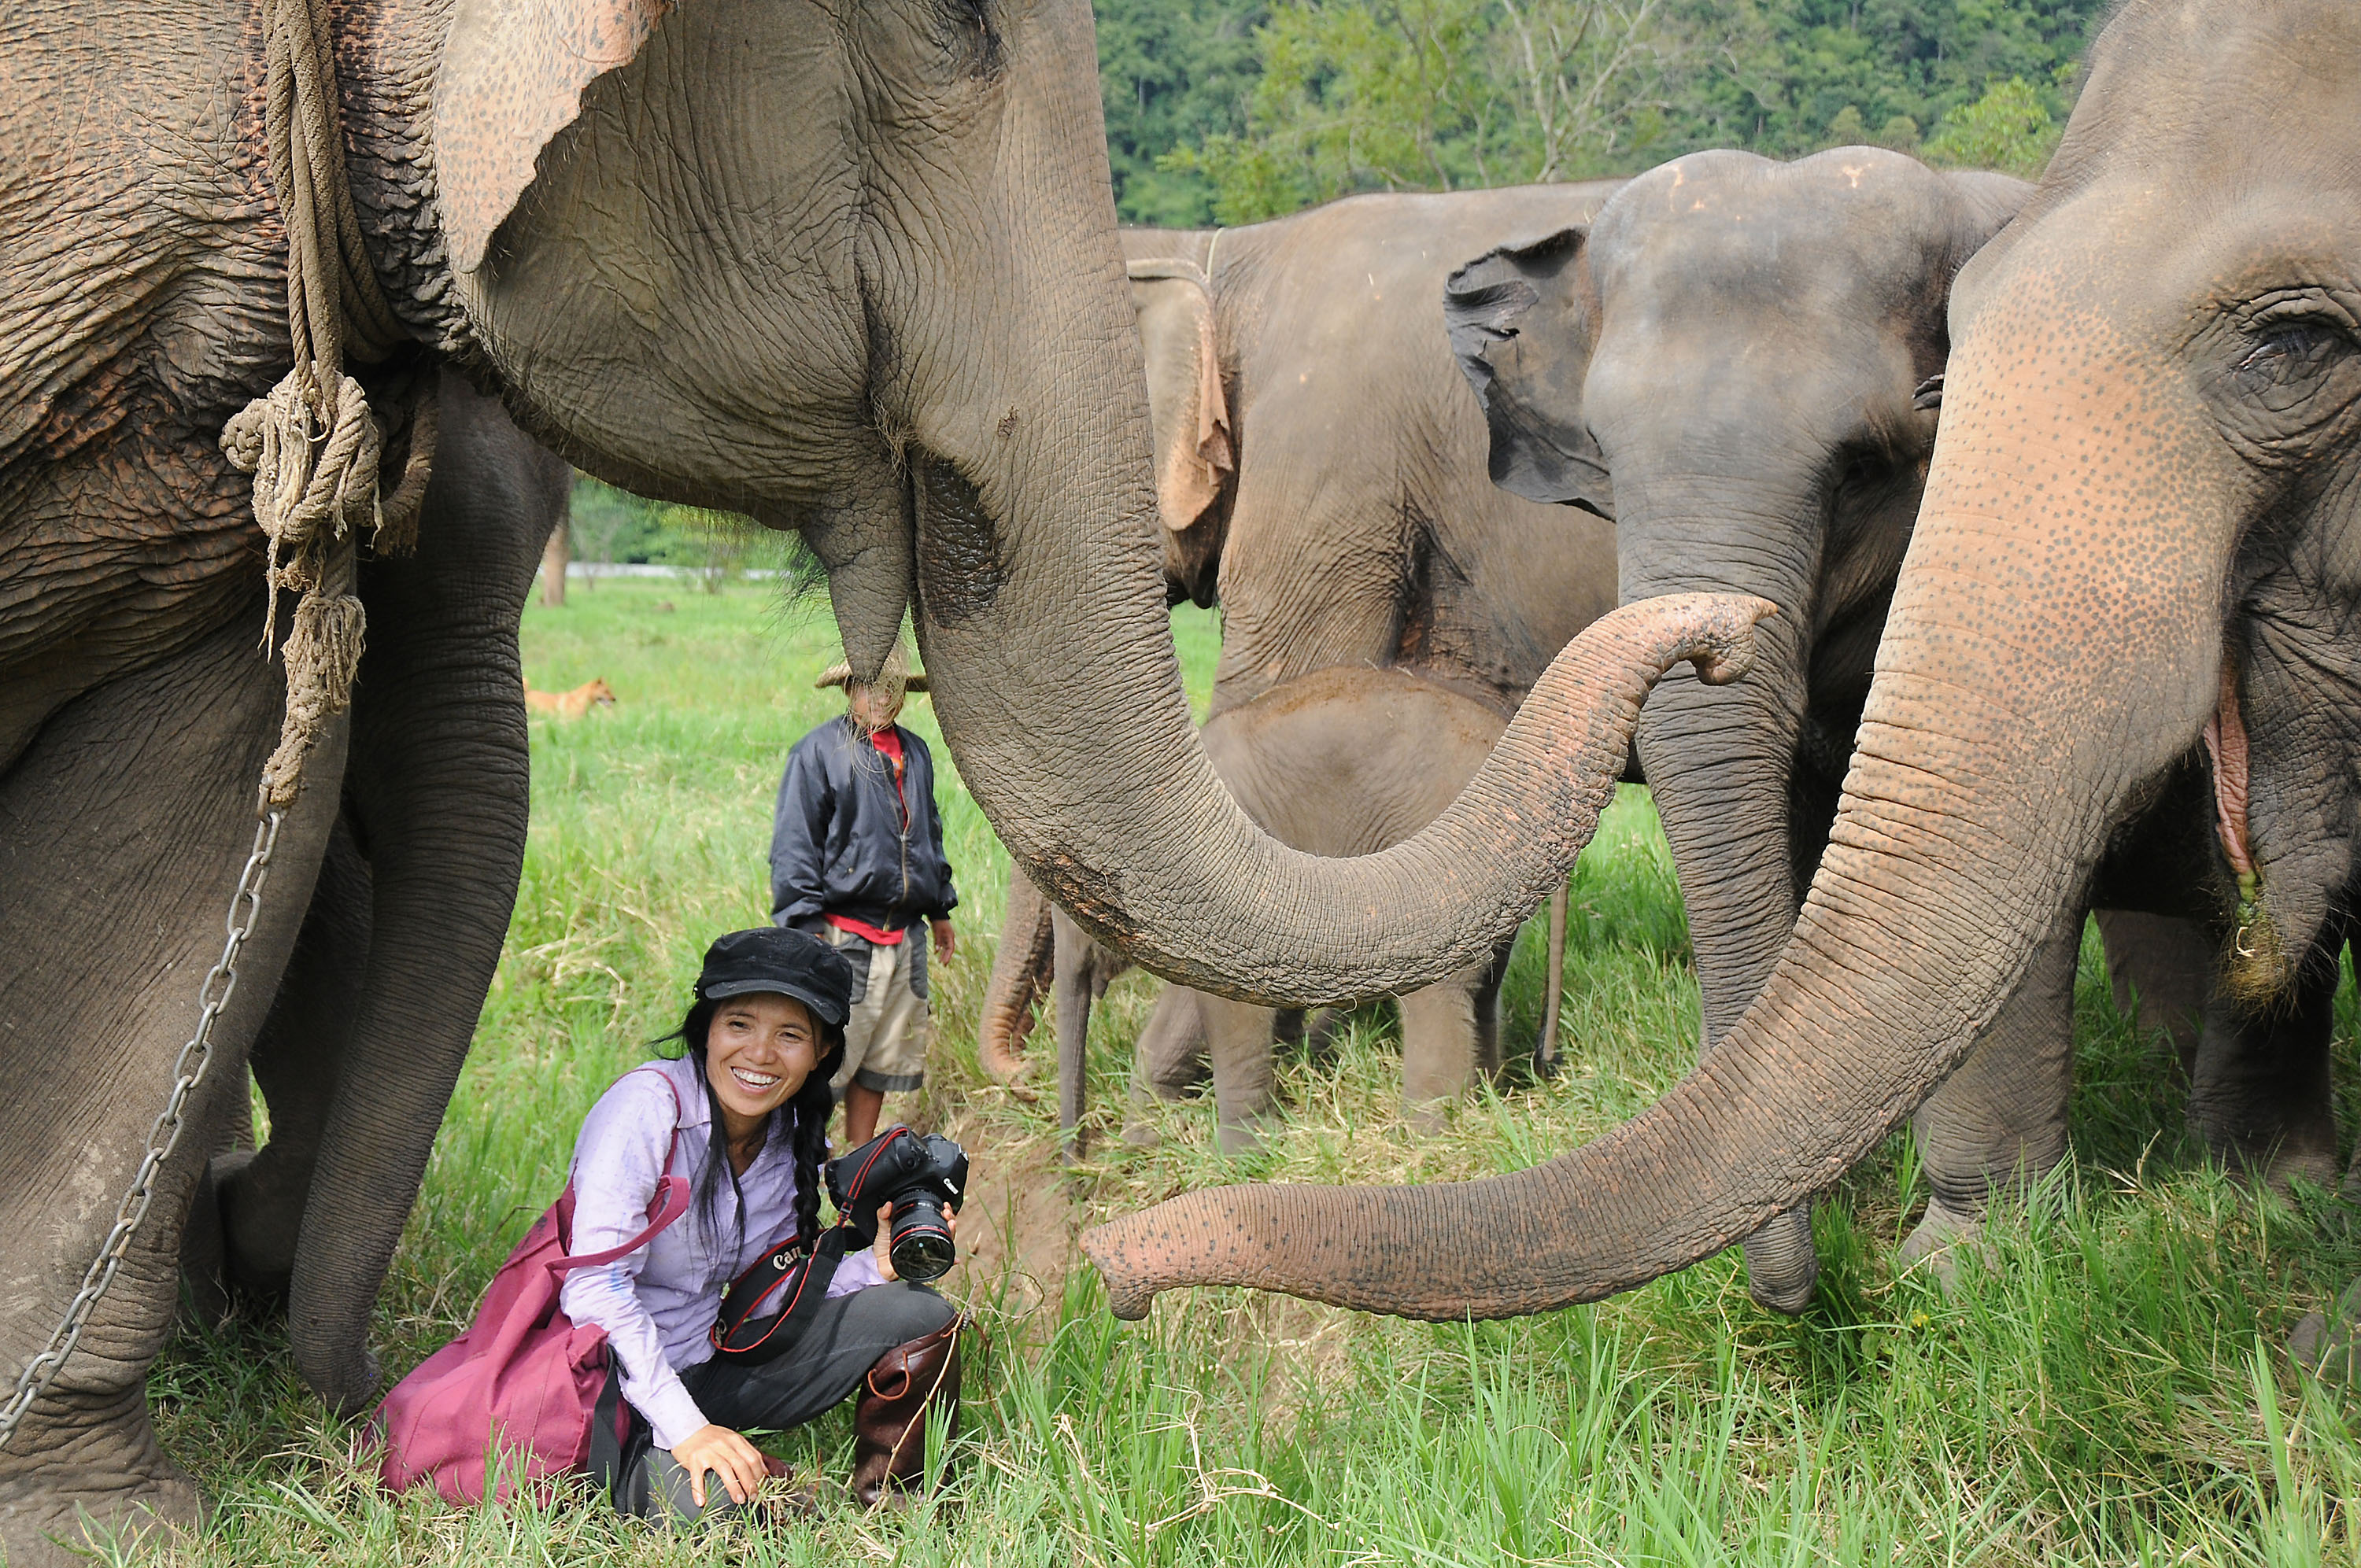 Sangduen Chailert, known as Lek, is surrounded by a herd of elephants she rescued at the Elephant Nature Park in Chiang Mai province, Thailand.